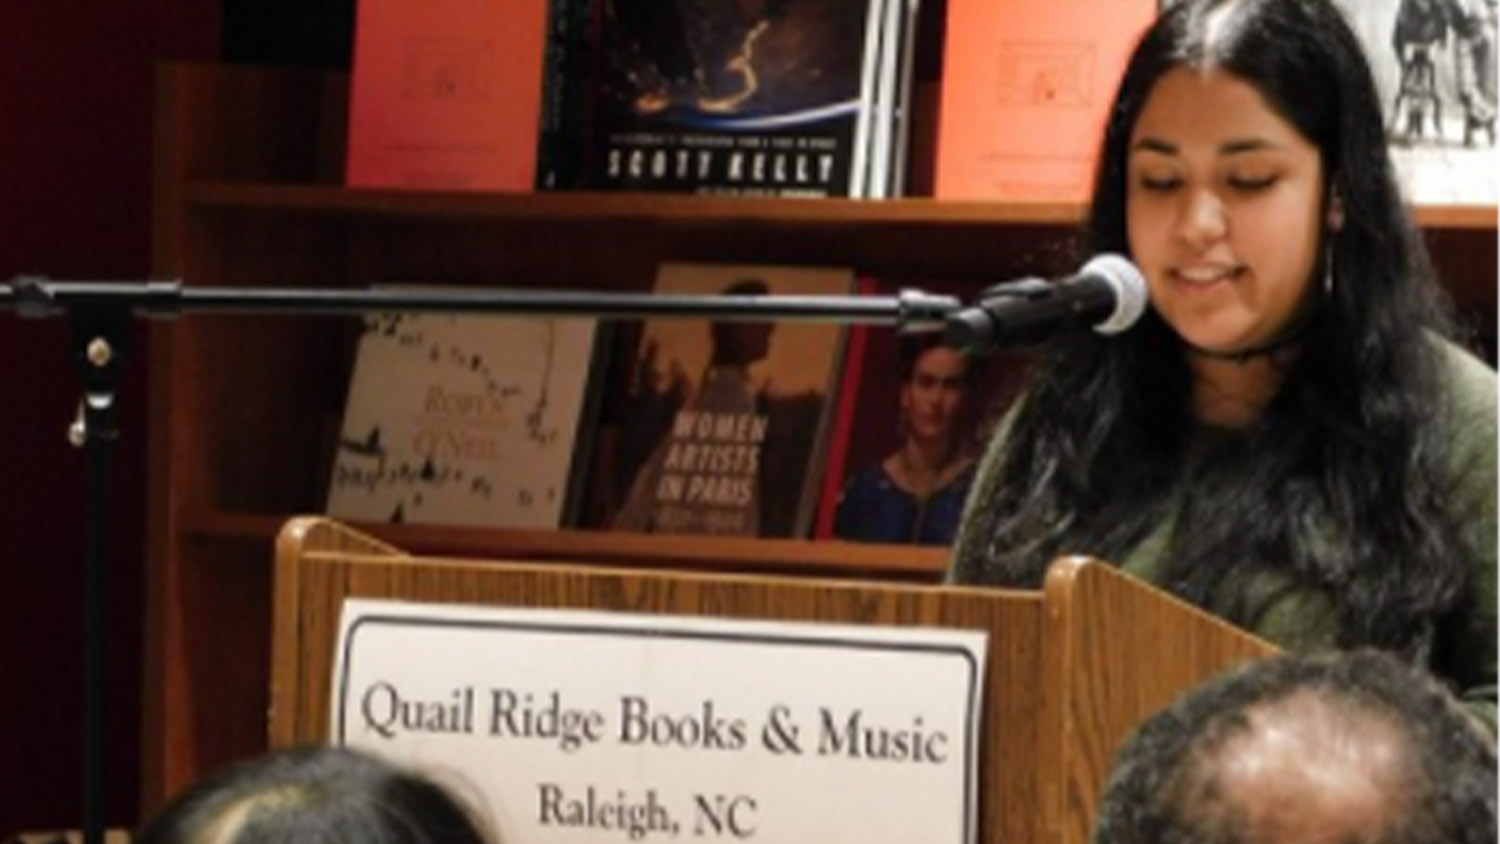 Briza Cruz gives a reading at a local bookstore